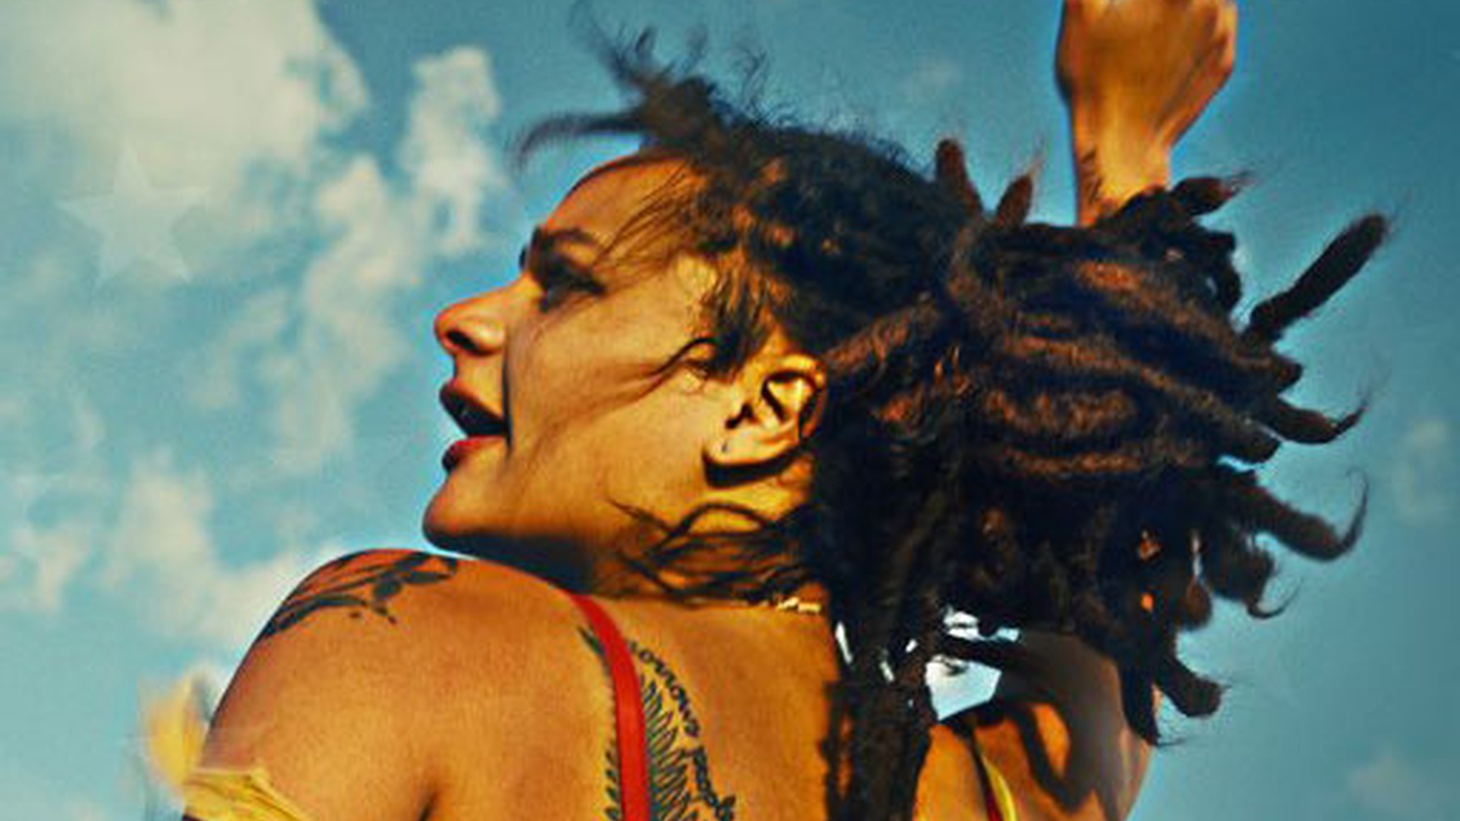 Just when you think you know what's going to happen, American Honey serves up one more surprise.